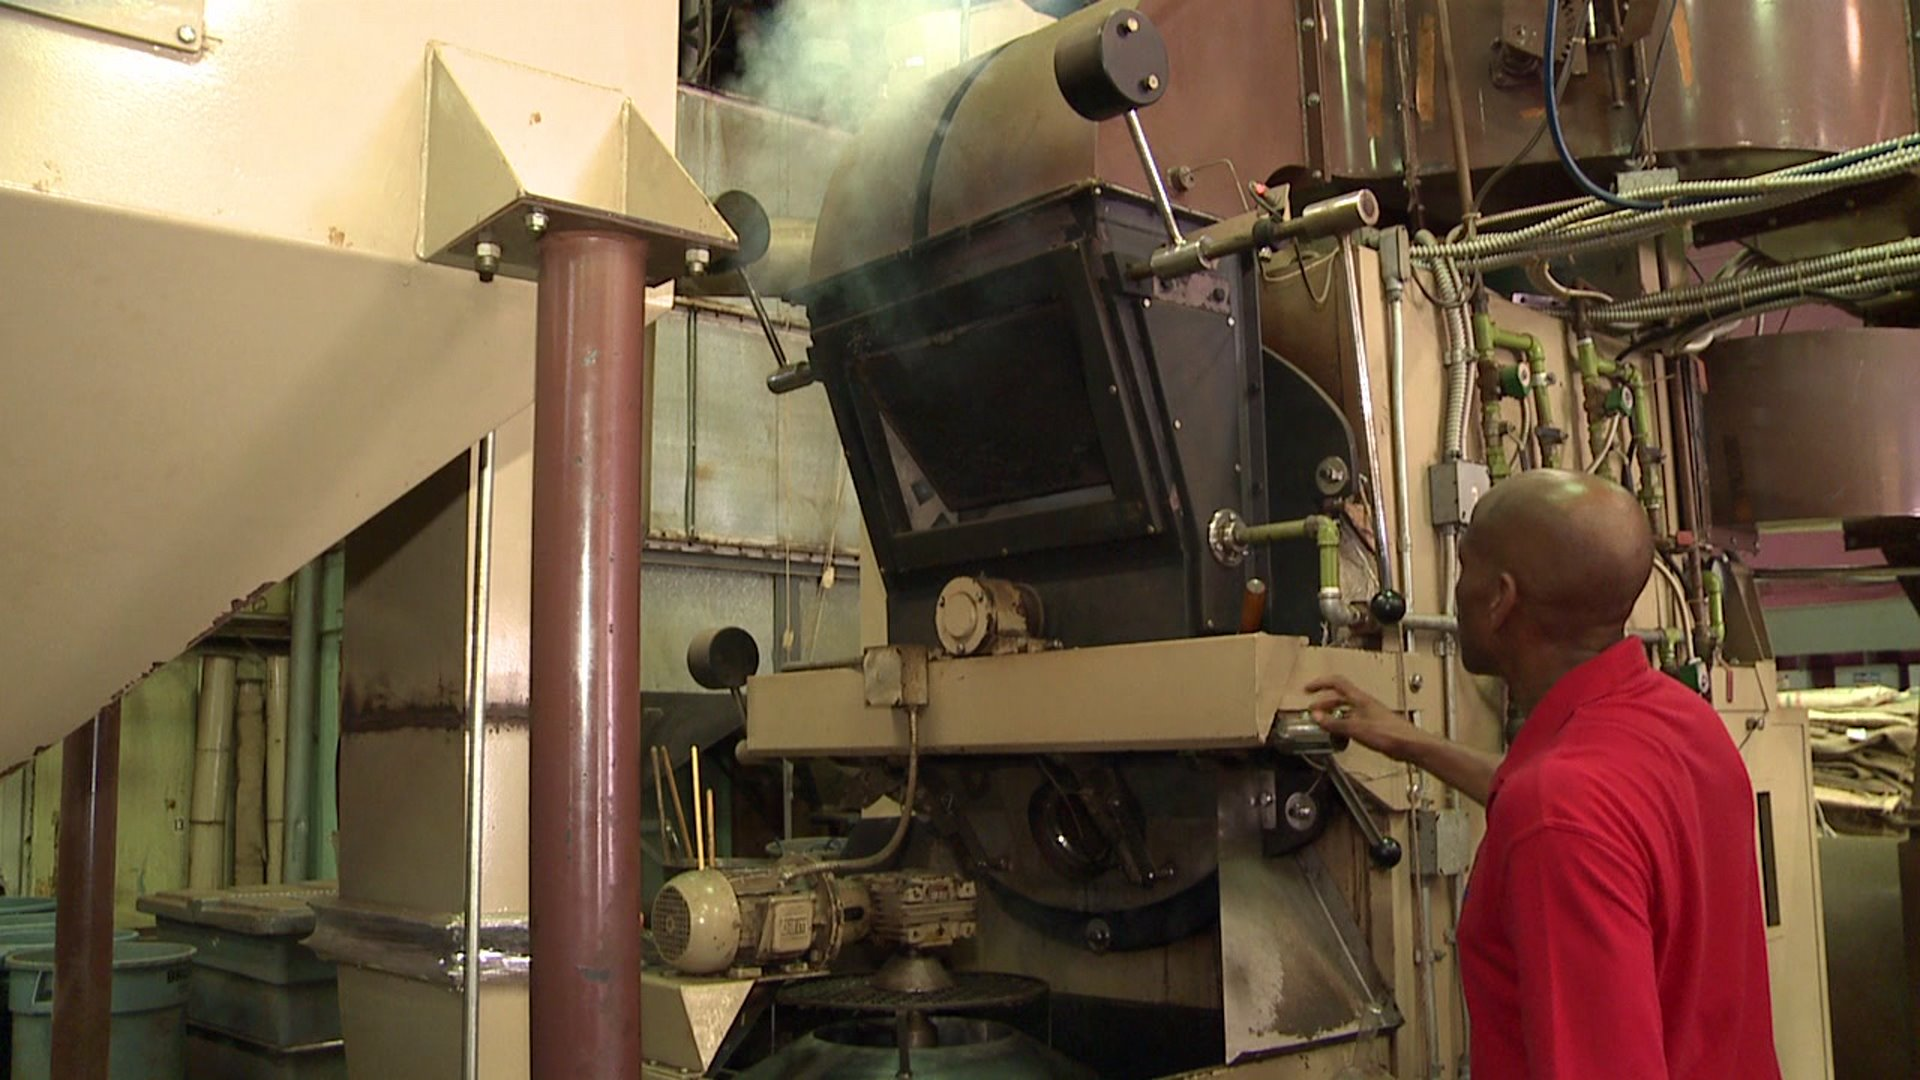 Behind the Scenes of a Coffee Roasting Factory